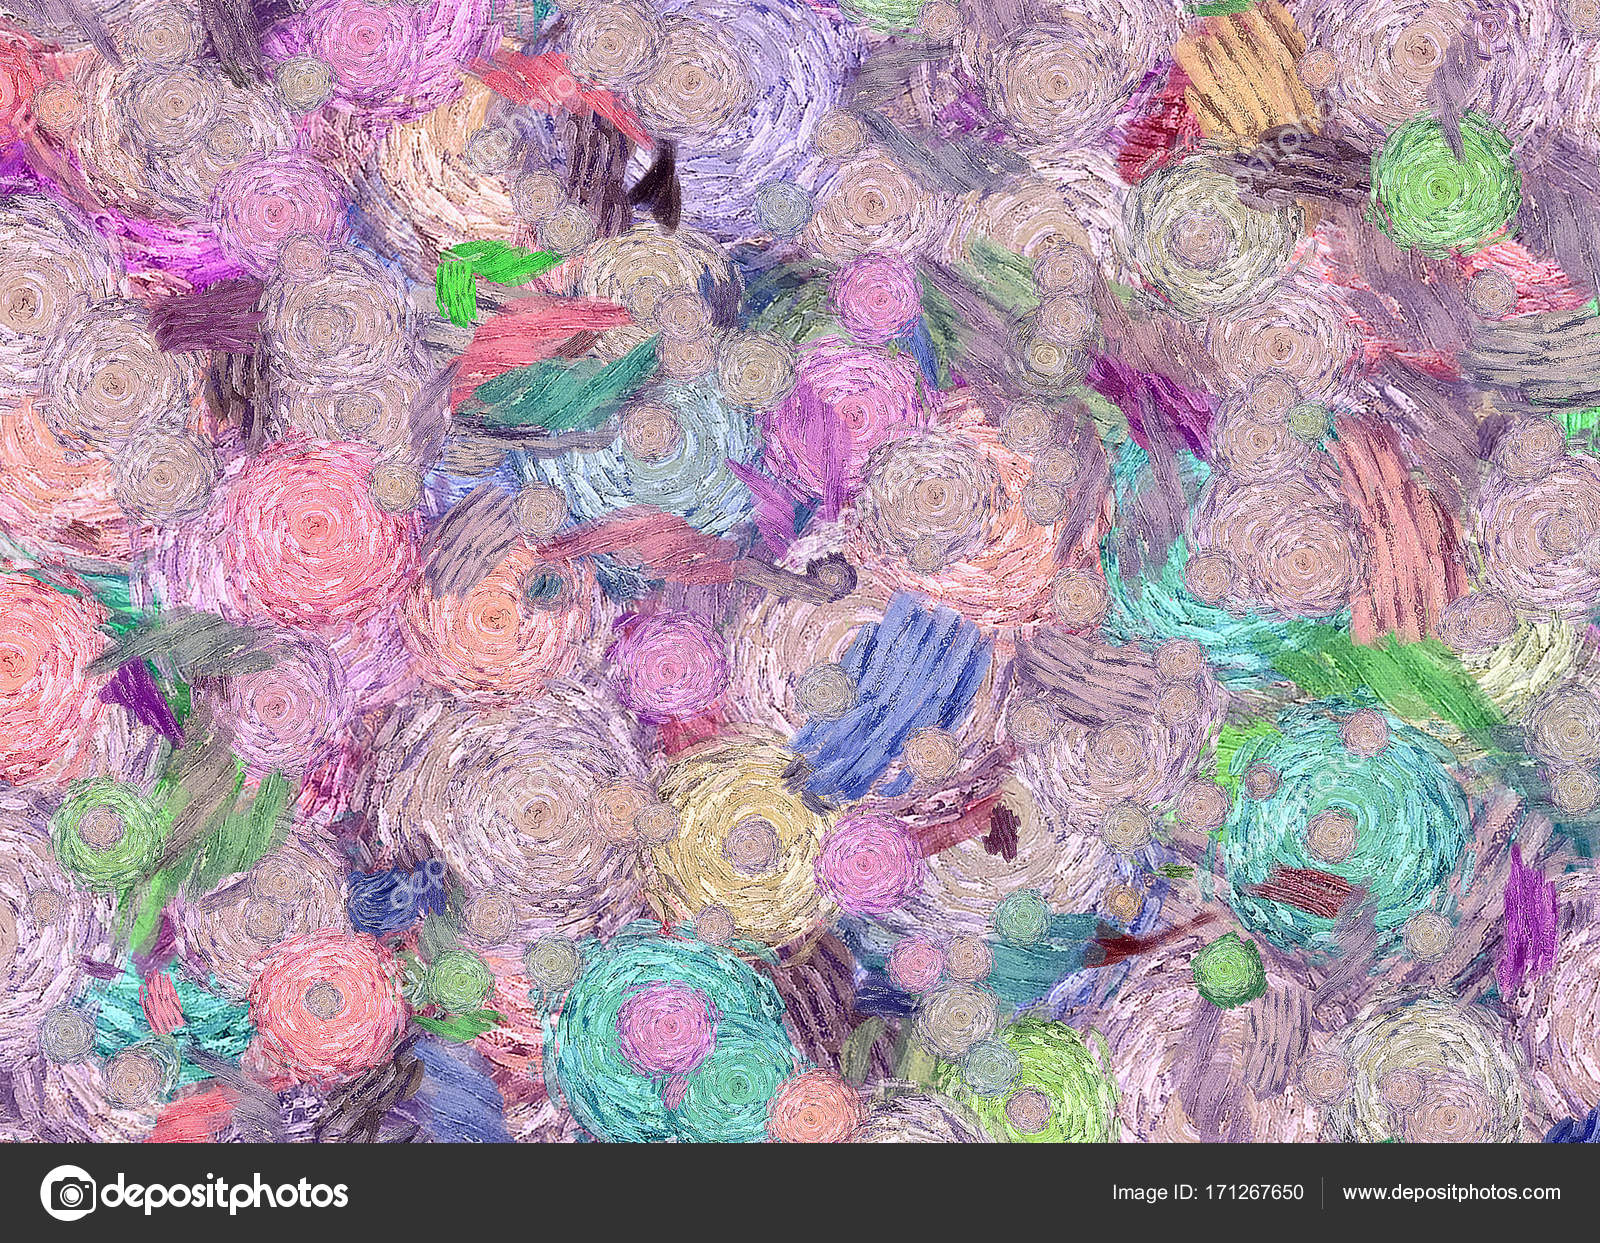 Abstract Background Design Elements Fashion Pattern Texture Fantasy Style Artistic Stock Photo C Livejournalist Guseff Gmail Com 171267650